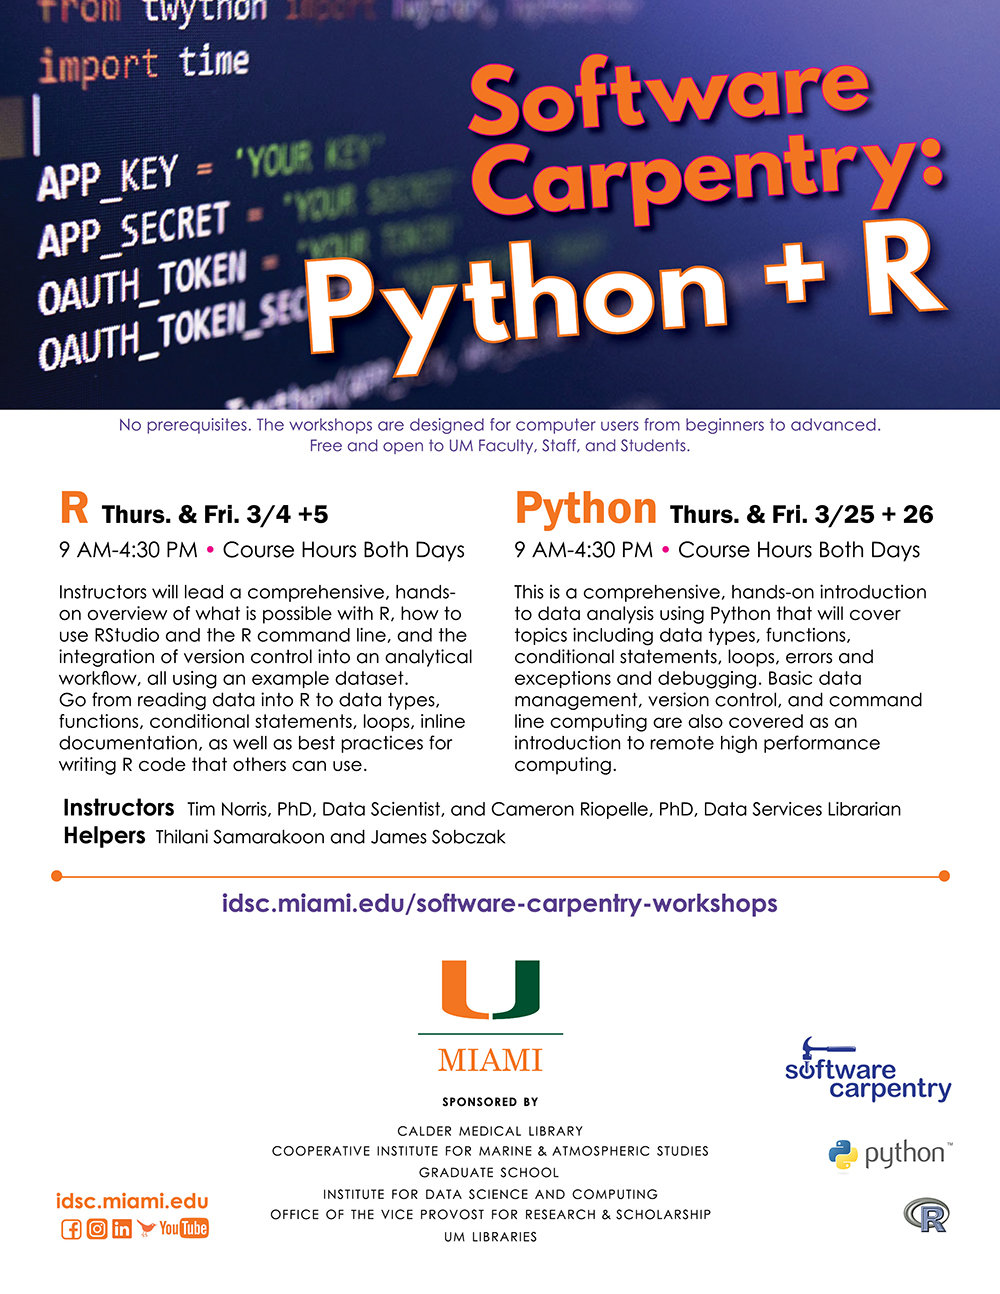 University of Miami Institute for Data Science and Computing Software Carpentry R Workshop FLYER